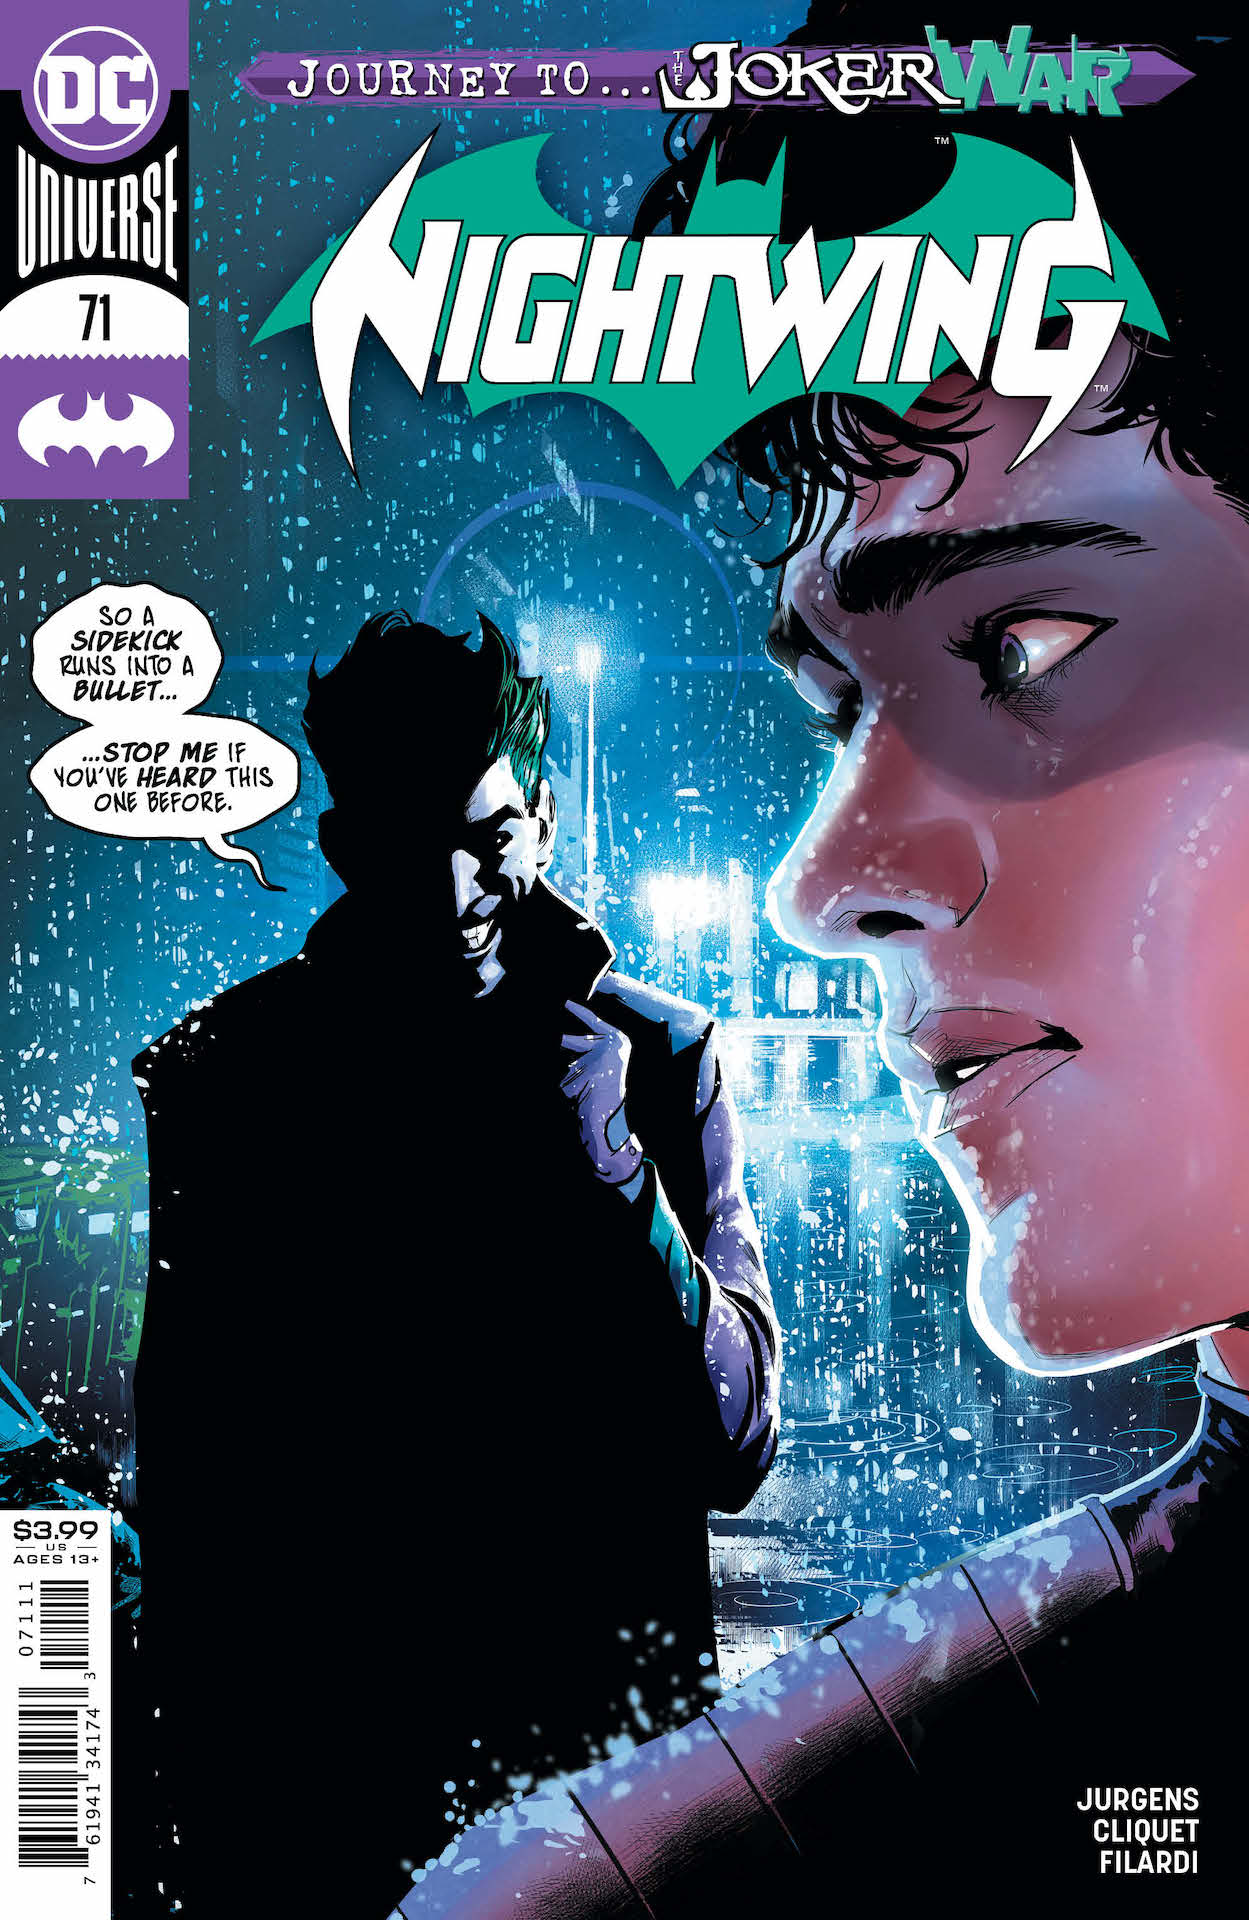 DC Preview: Nightwing #71 - Countdown to 'The Joker War'